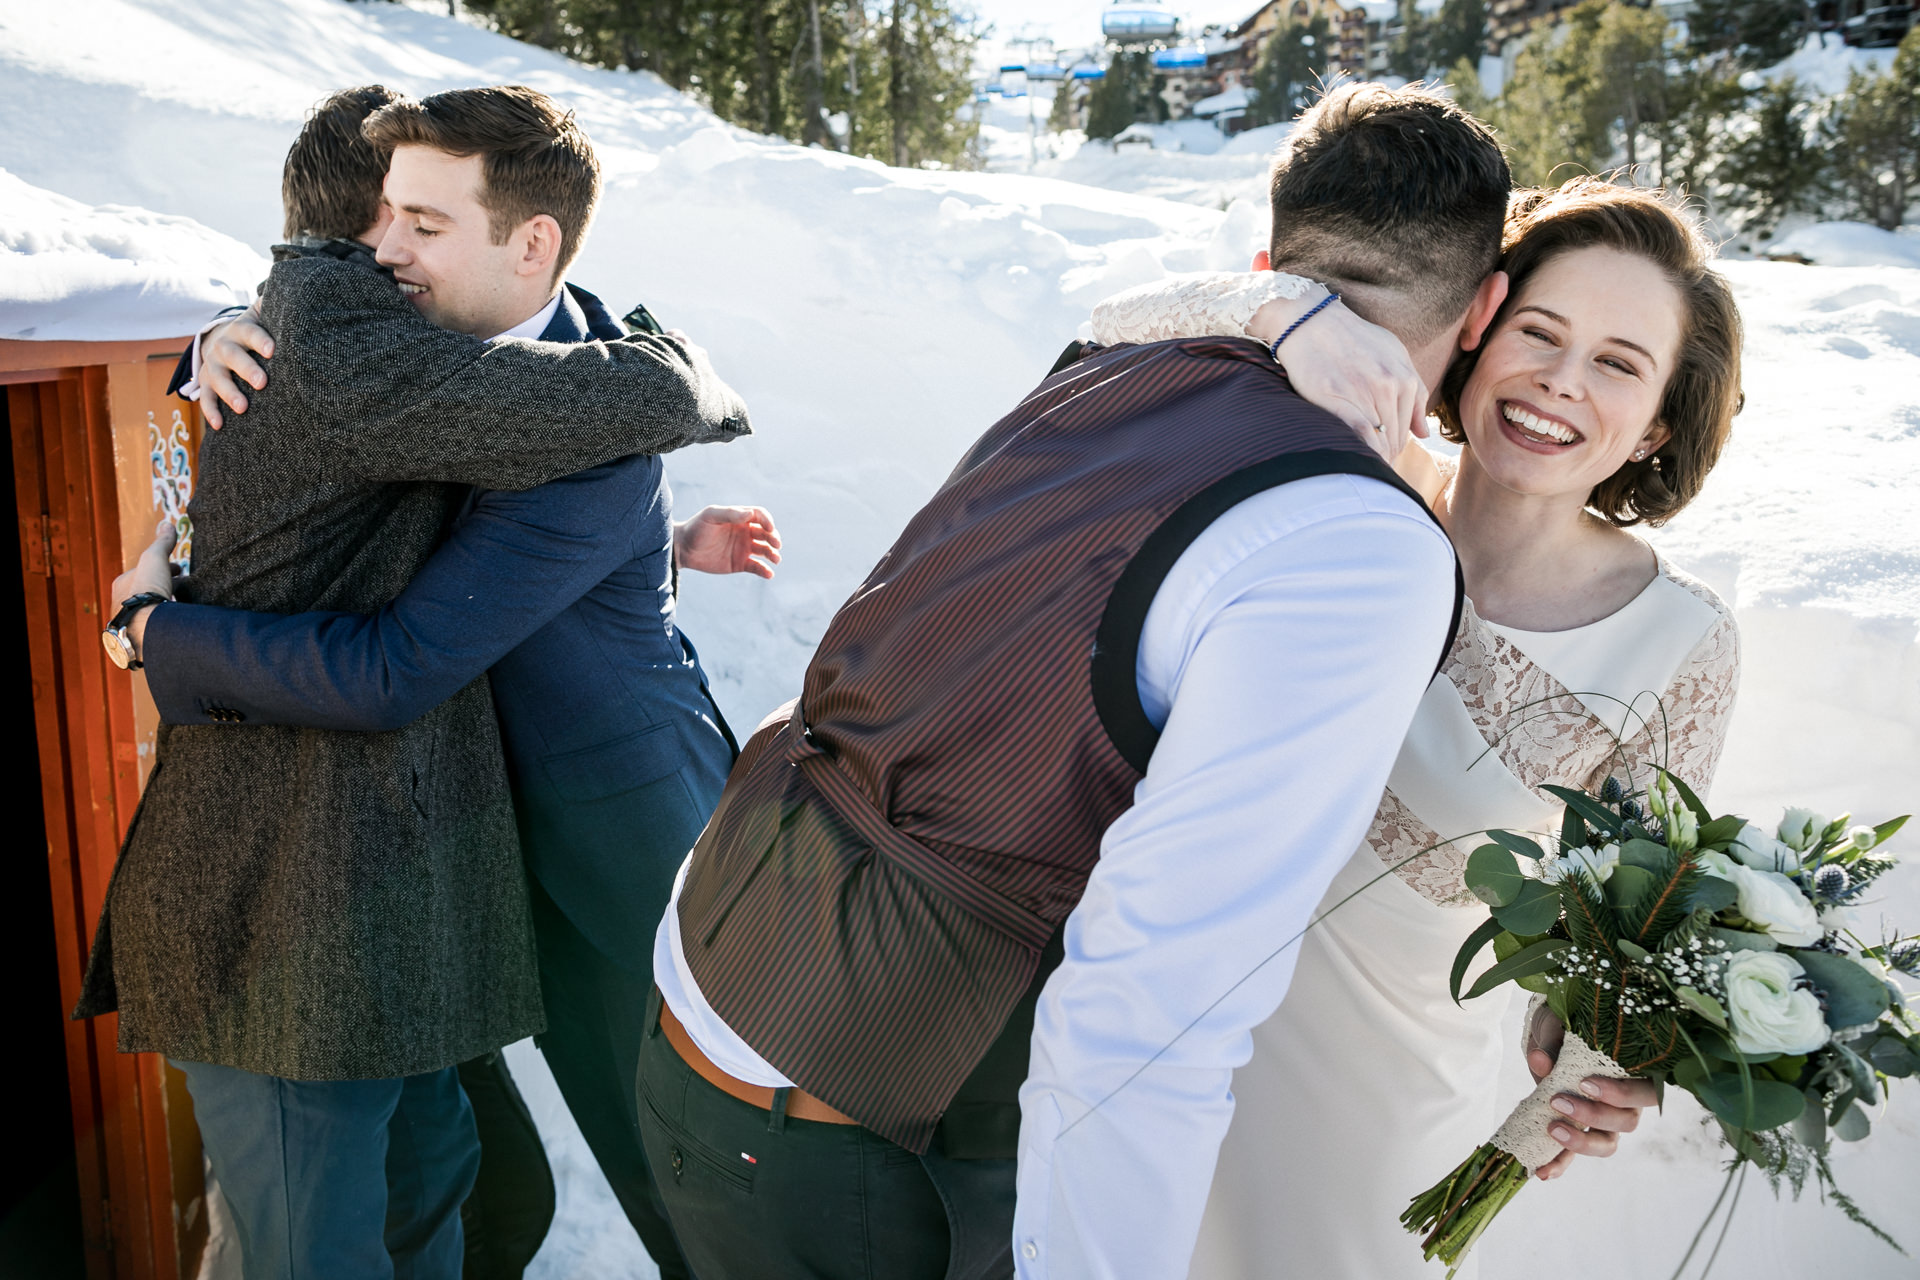 France Elopement Picture from Les Arcs Ski Resort | The bride and groom hug their friends